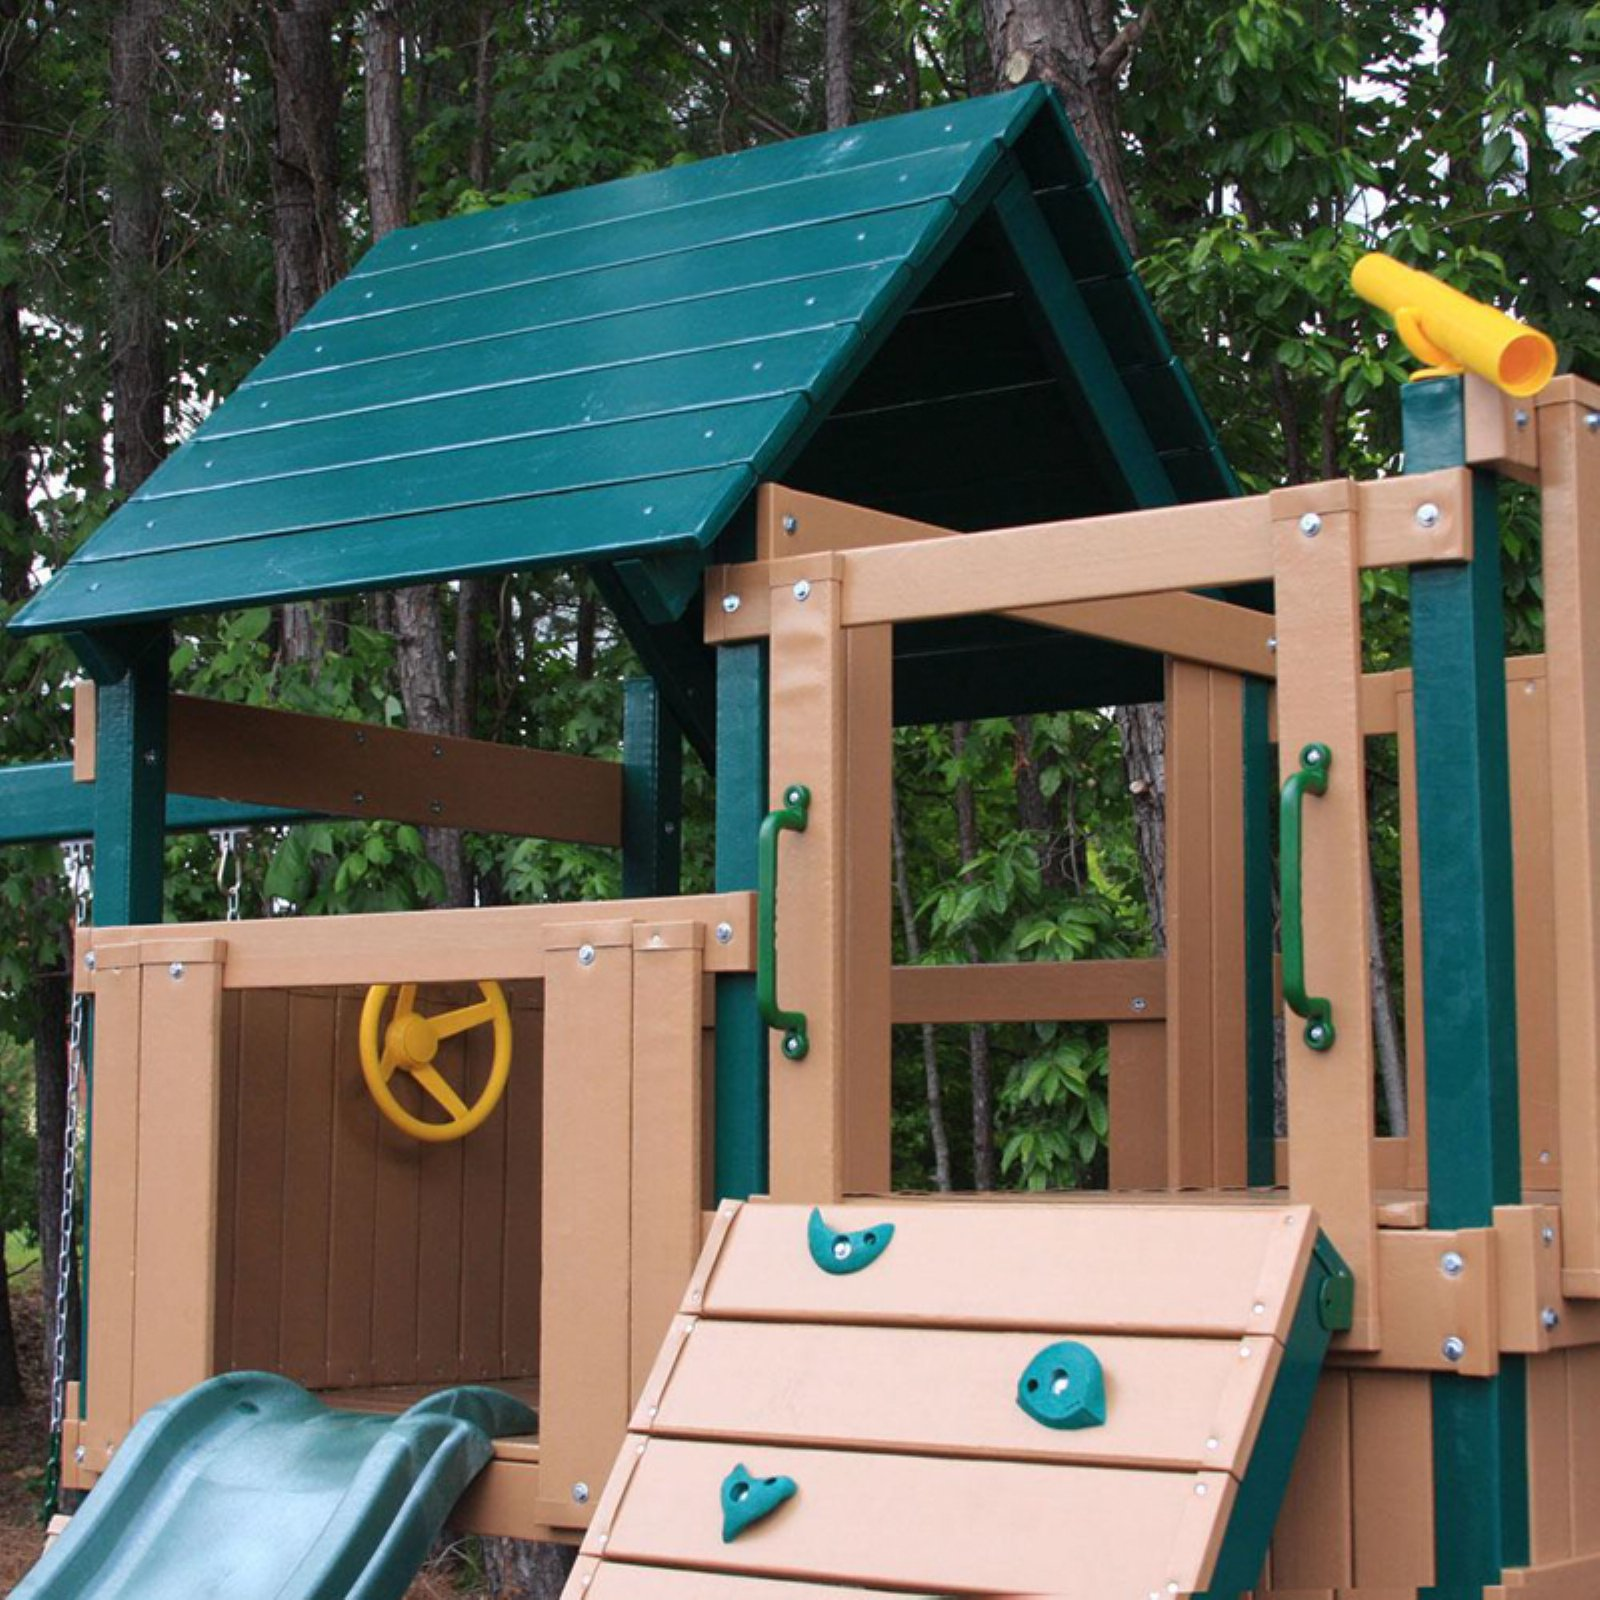 Kidwise Congo Safari Lookout And Climber Play System Green Sand